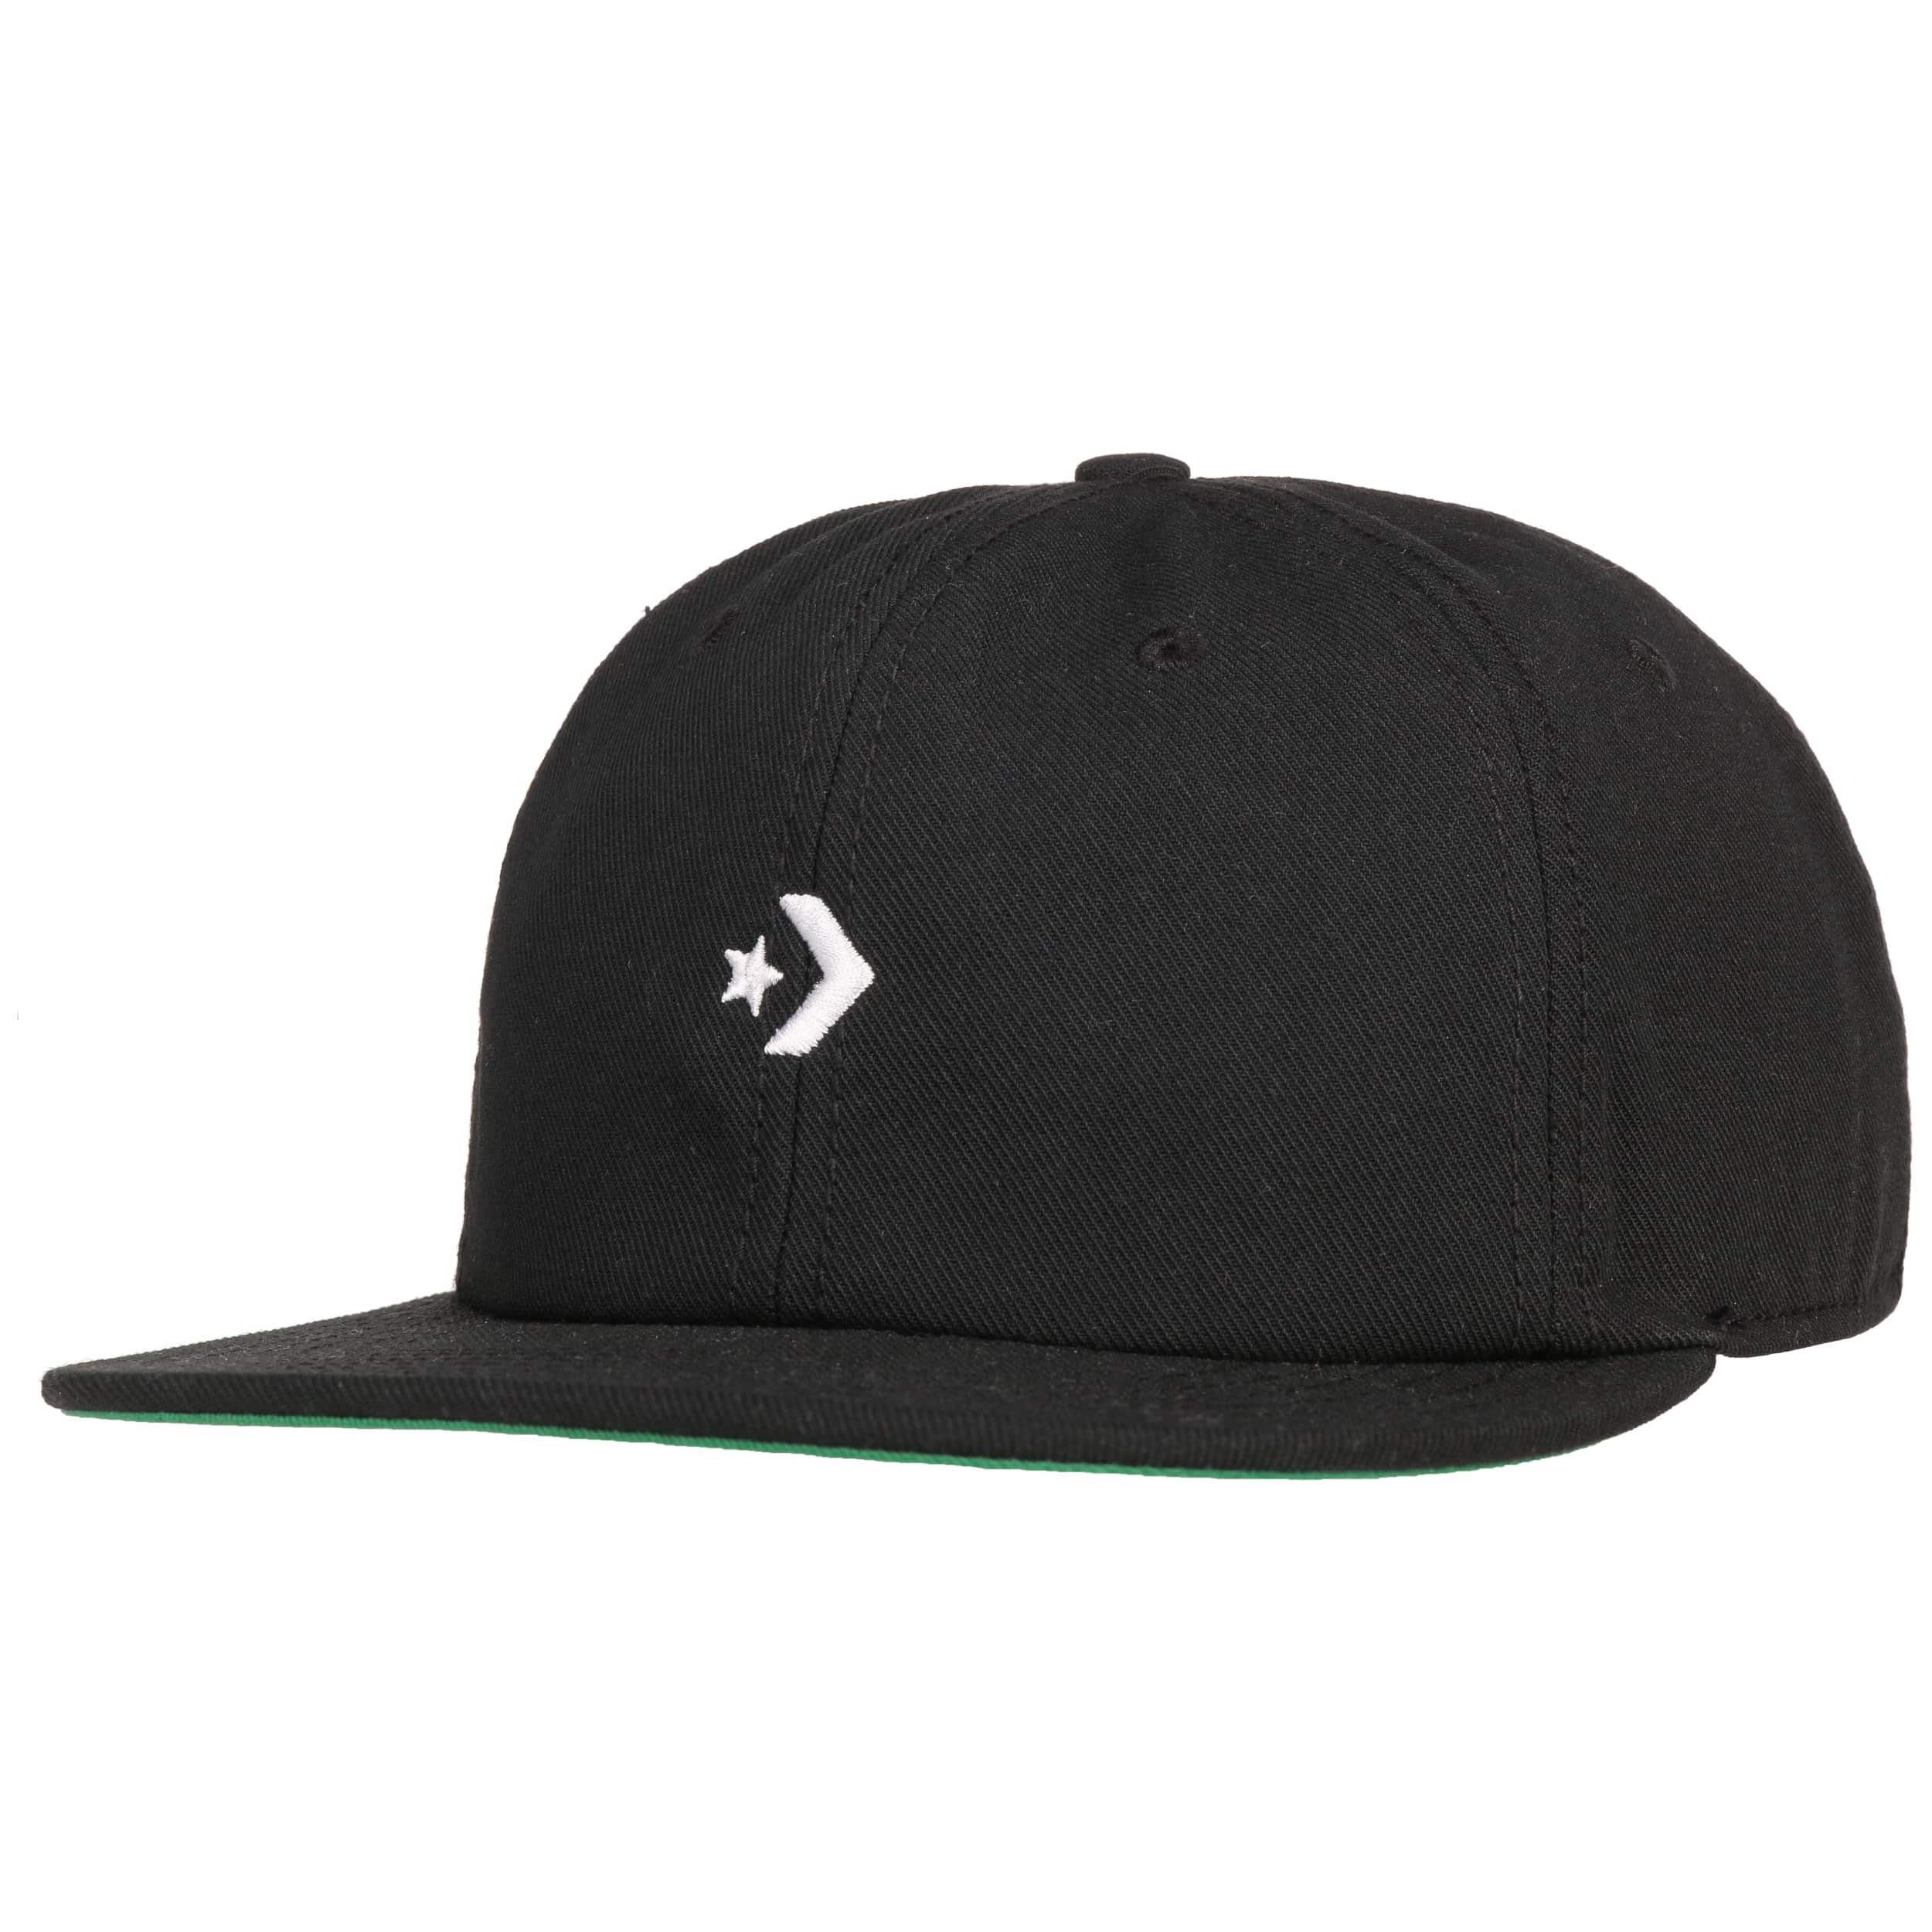 decce1bc622 ... Star Chev Fall Weight Cap by Converse - black 6 ...